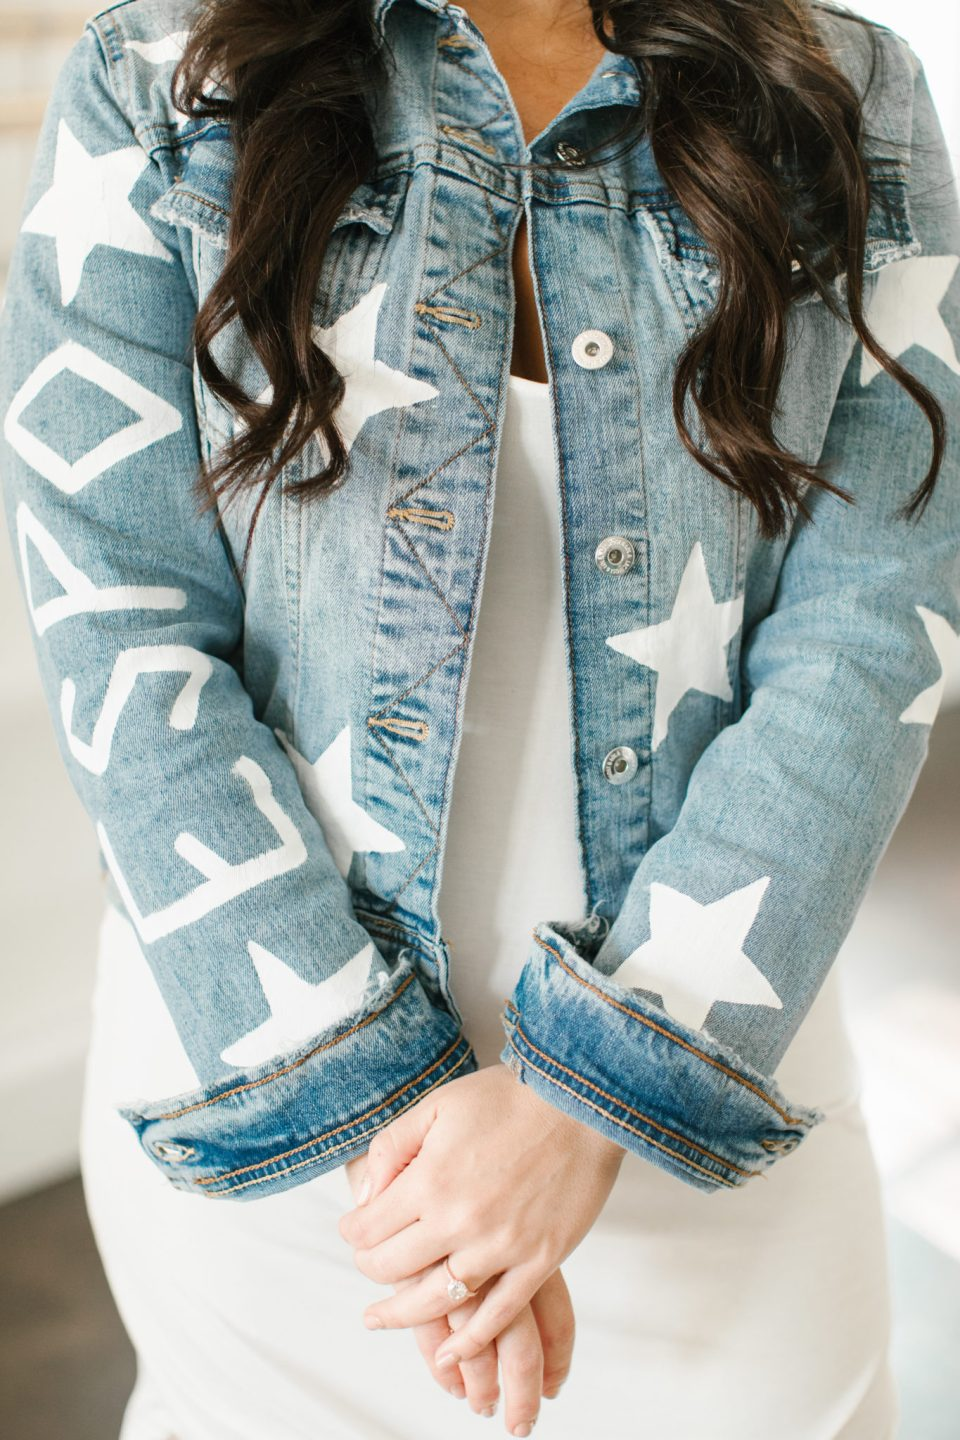 custom jean jacket for bridesmaid photographed by Ashley Mac Photographs